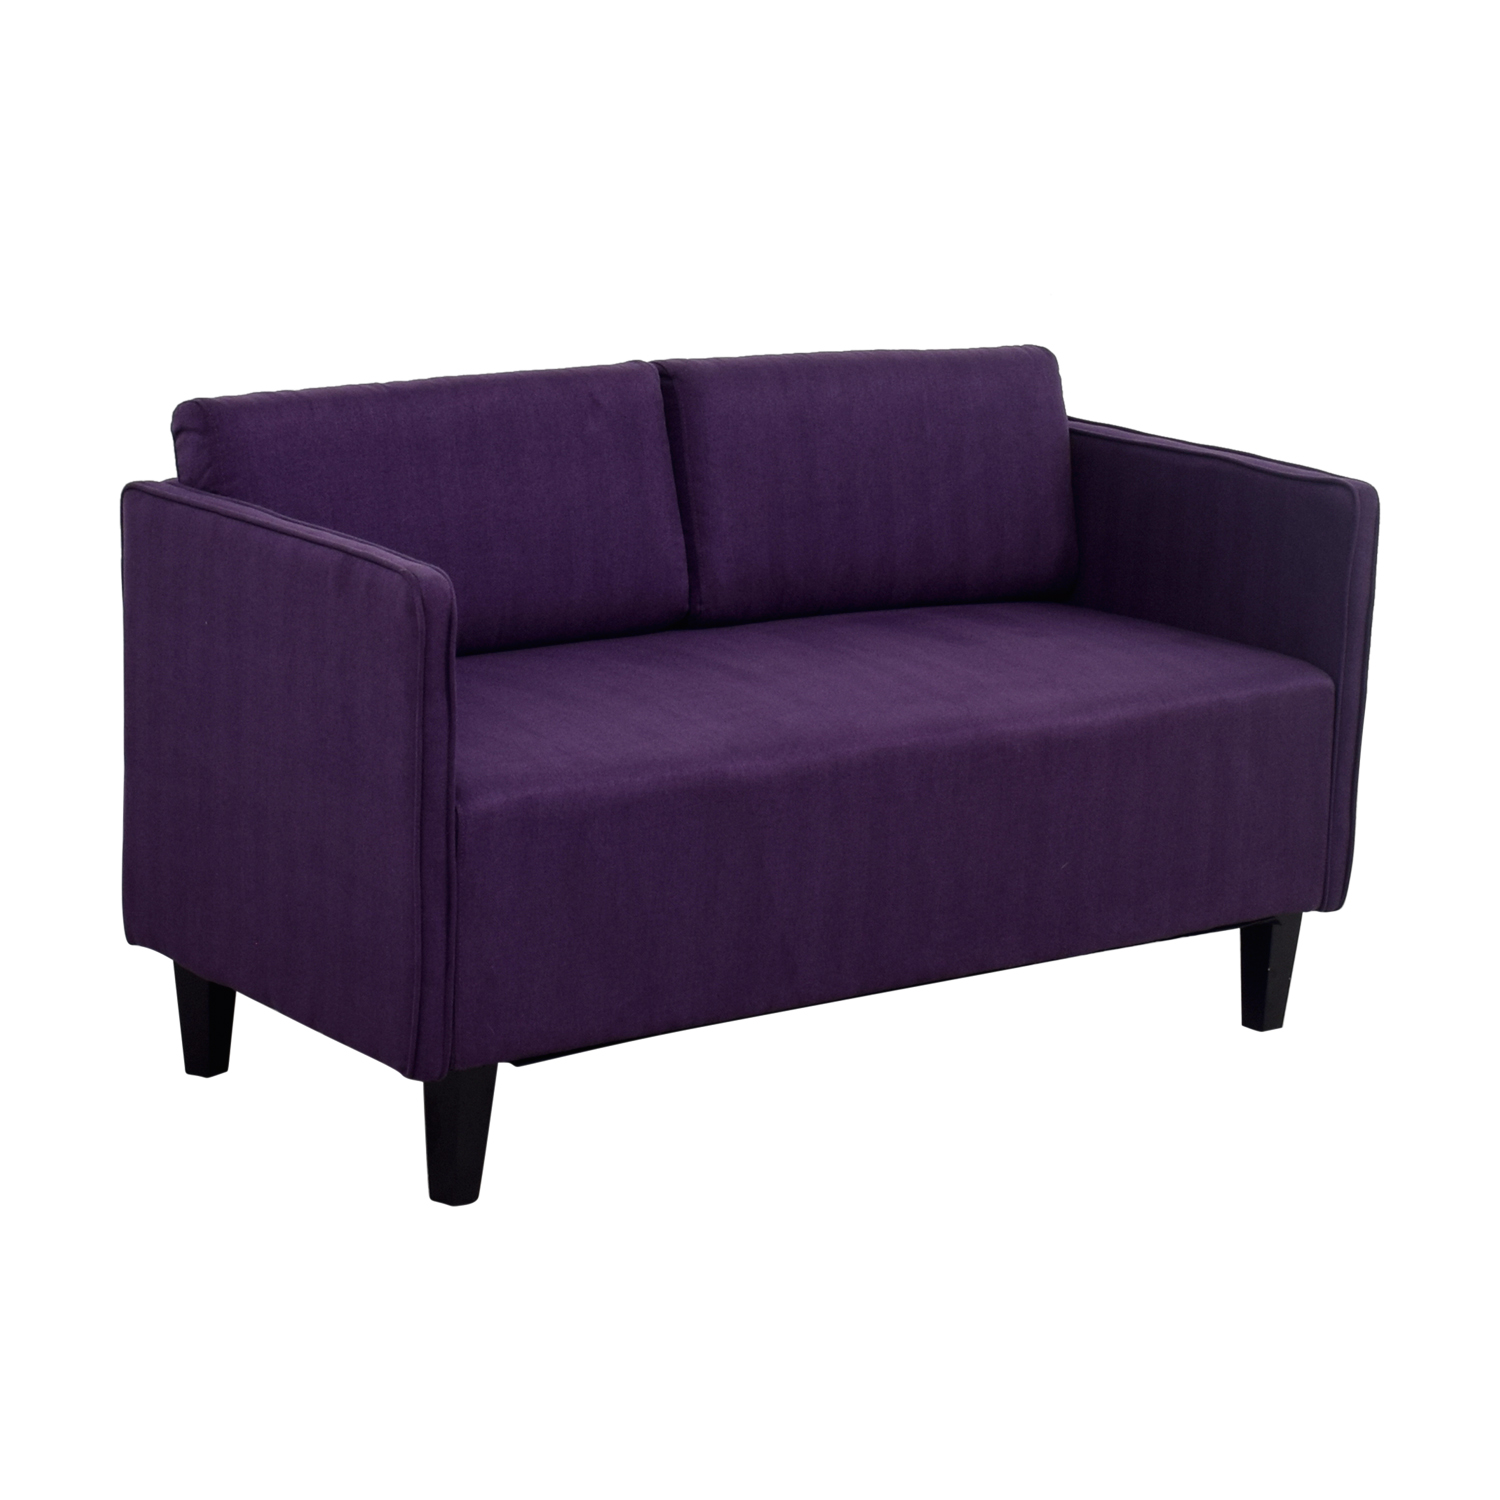 shop Ebern Designs Ebern Designs Dempsey Purple Herringbone Loveseat online